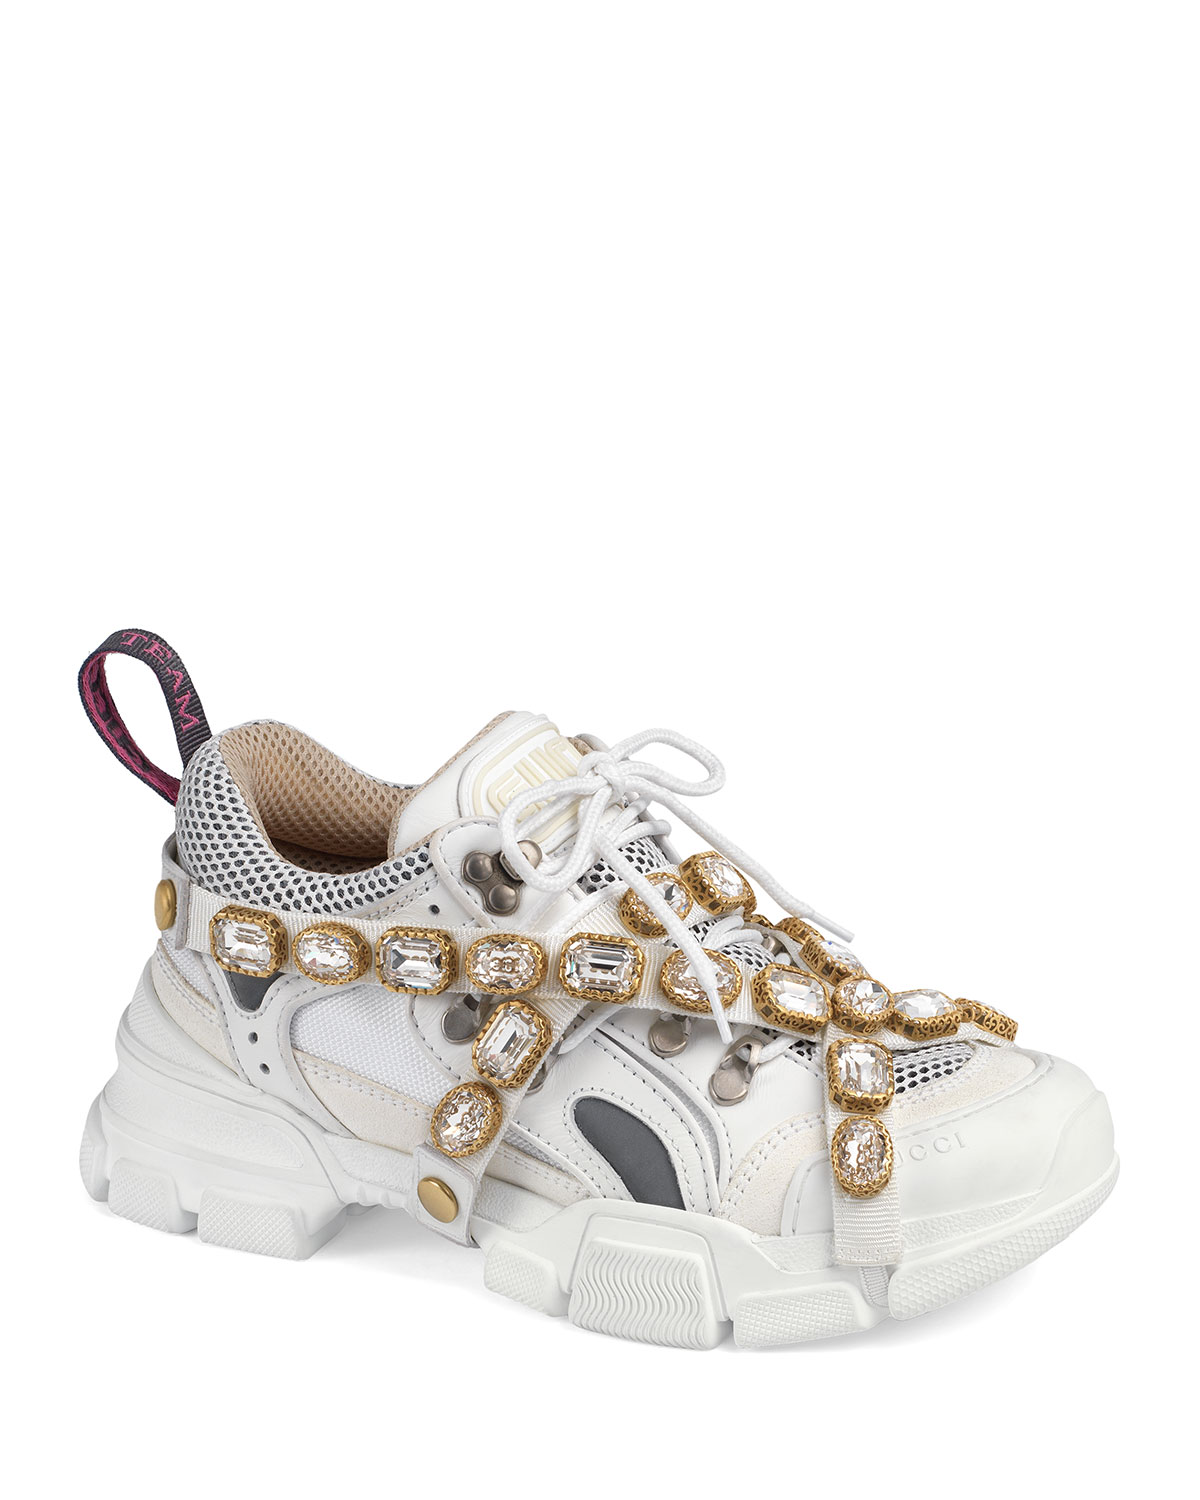 Gucci Flashtrek Tonal Hiker Sneaker With Chain Strap